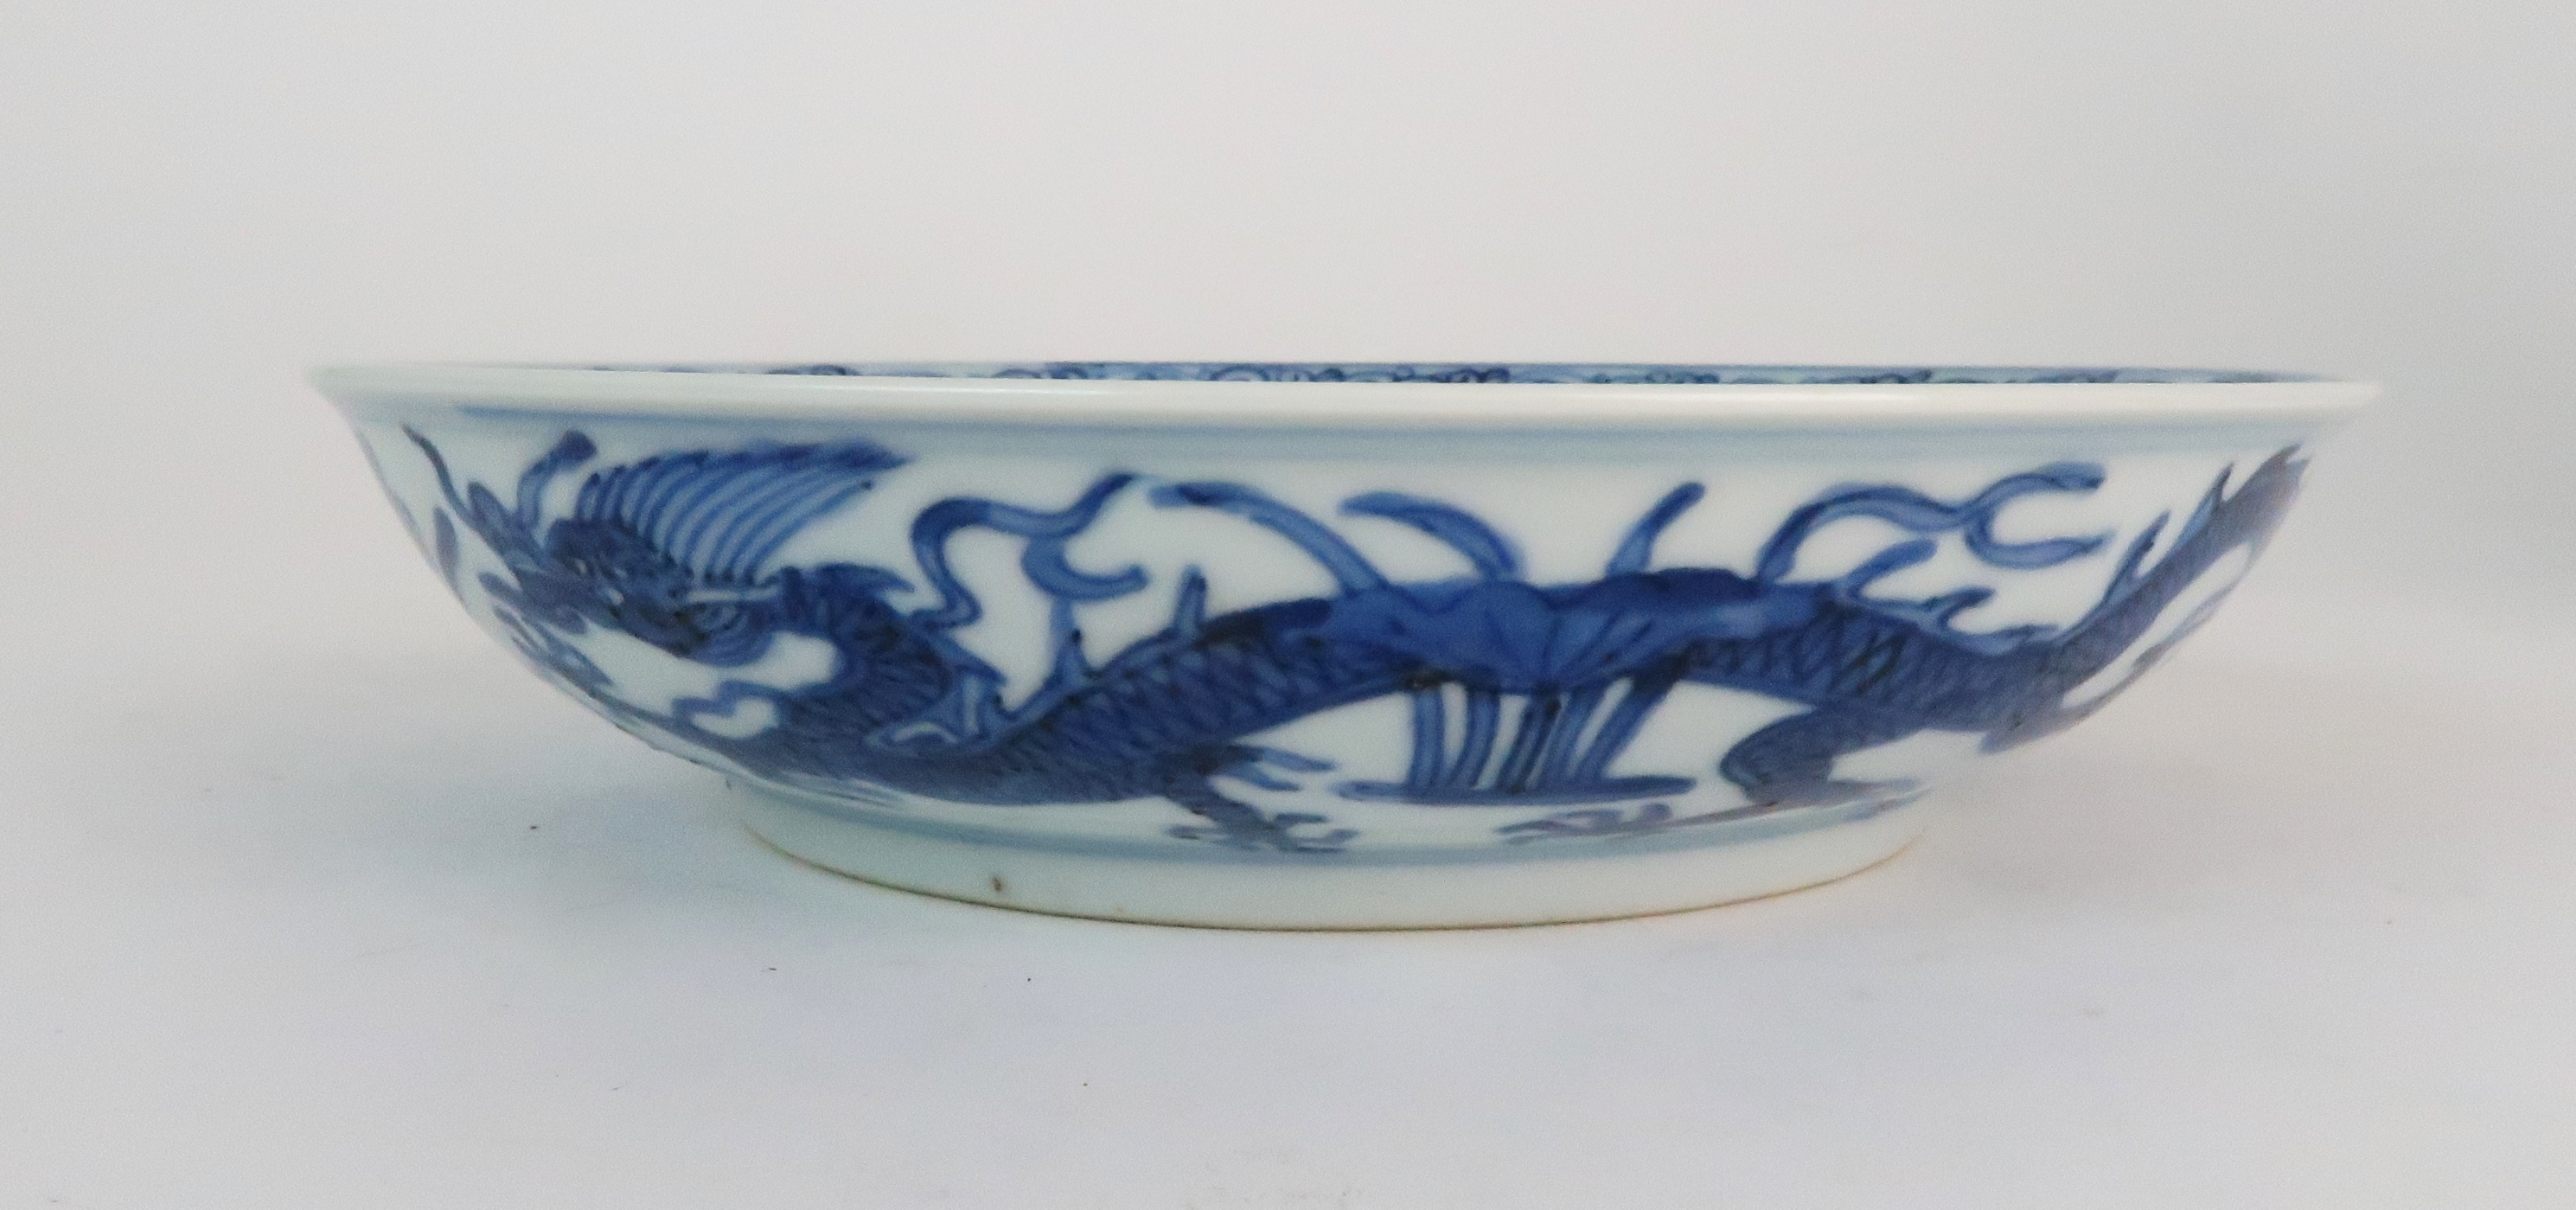 A CHINESE BLUE AND WHITE DISH painted with dragons amongst aquatic foliage, within a scrolling - Image 3 of 6